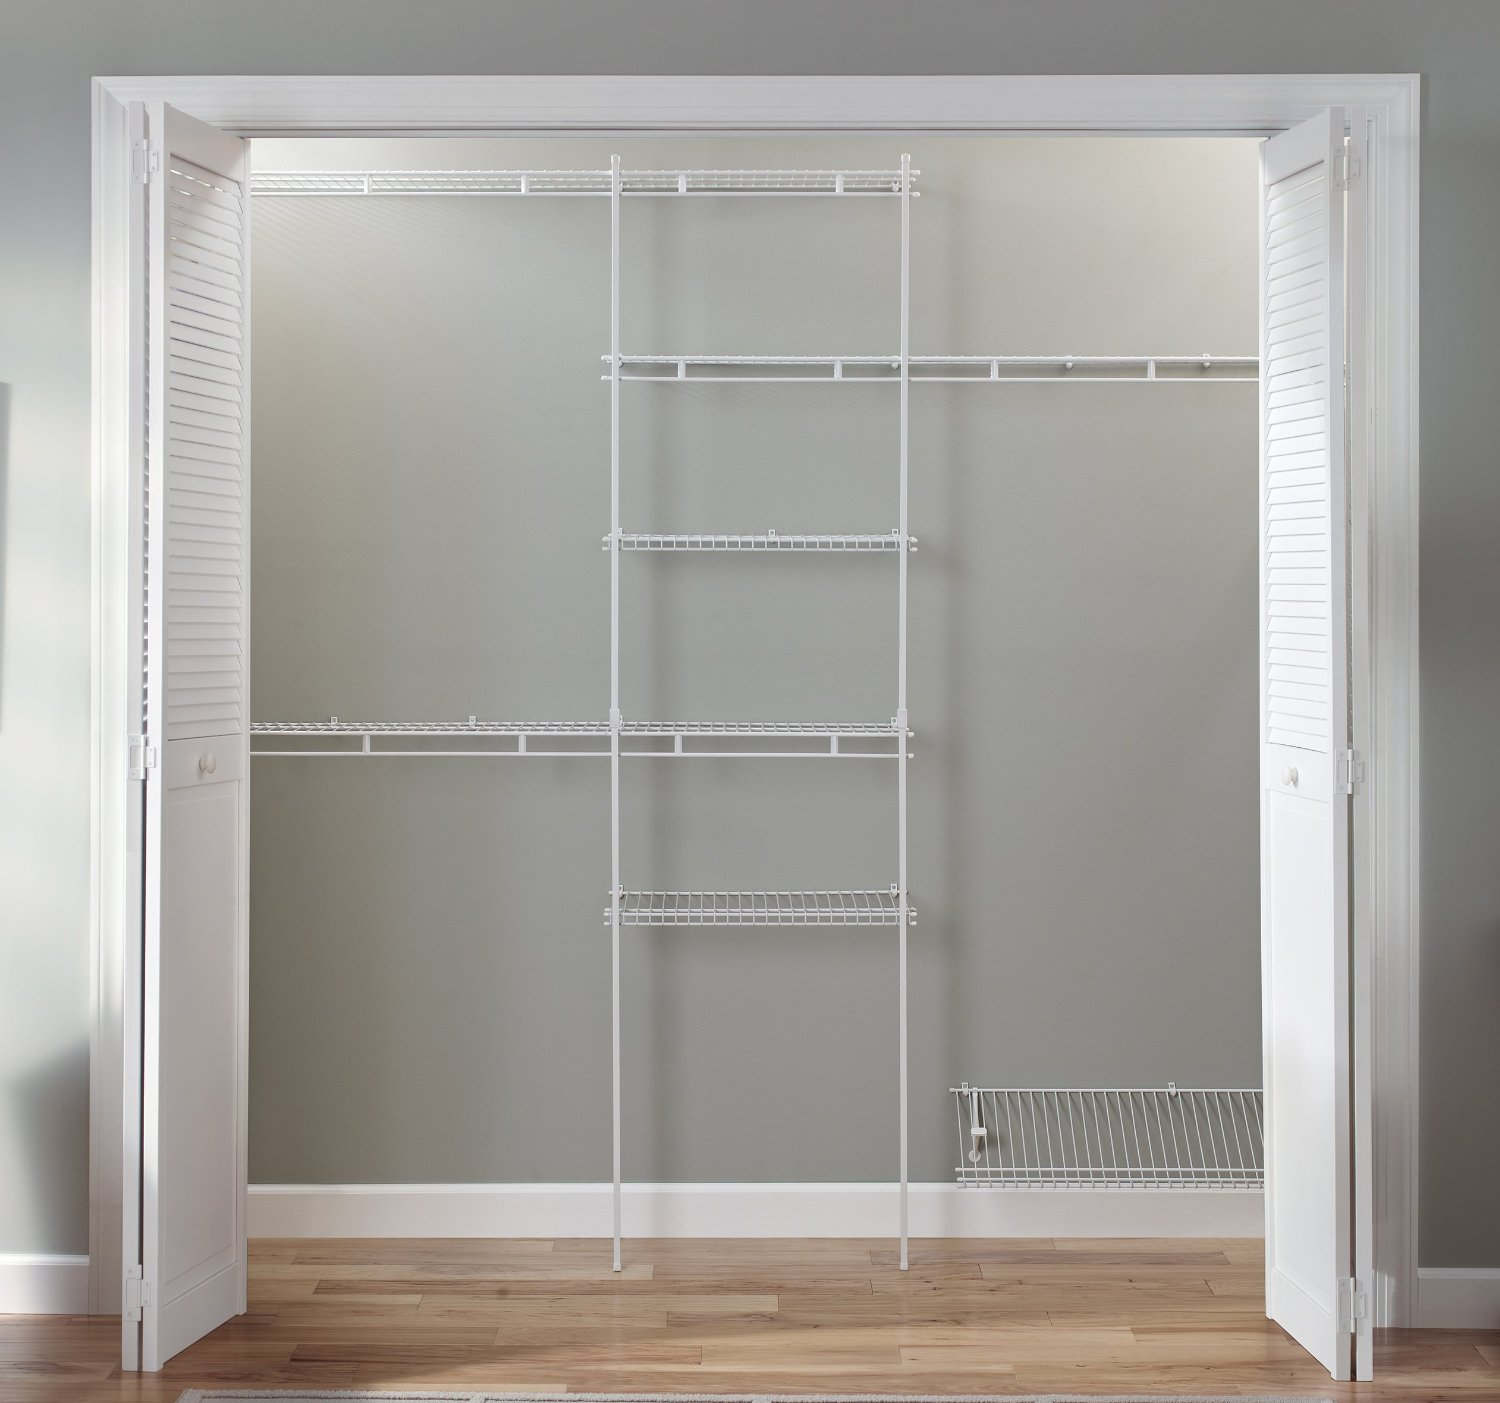 Do It Yourself Home Design: Closet Organizer Kit-White Color-5 Feet To 8 Feet-ClosetMaid